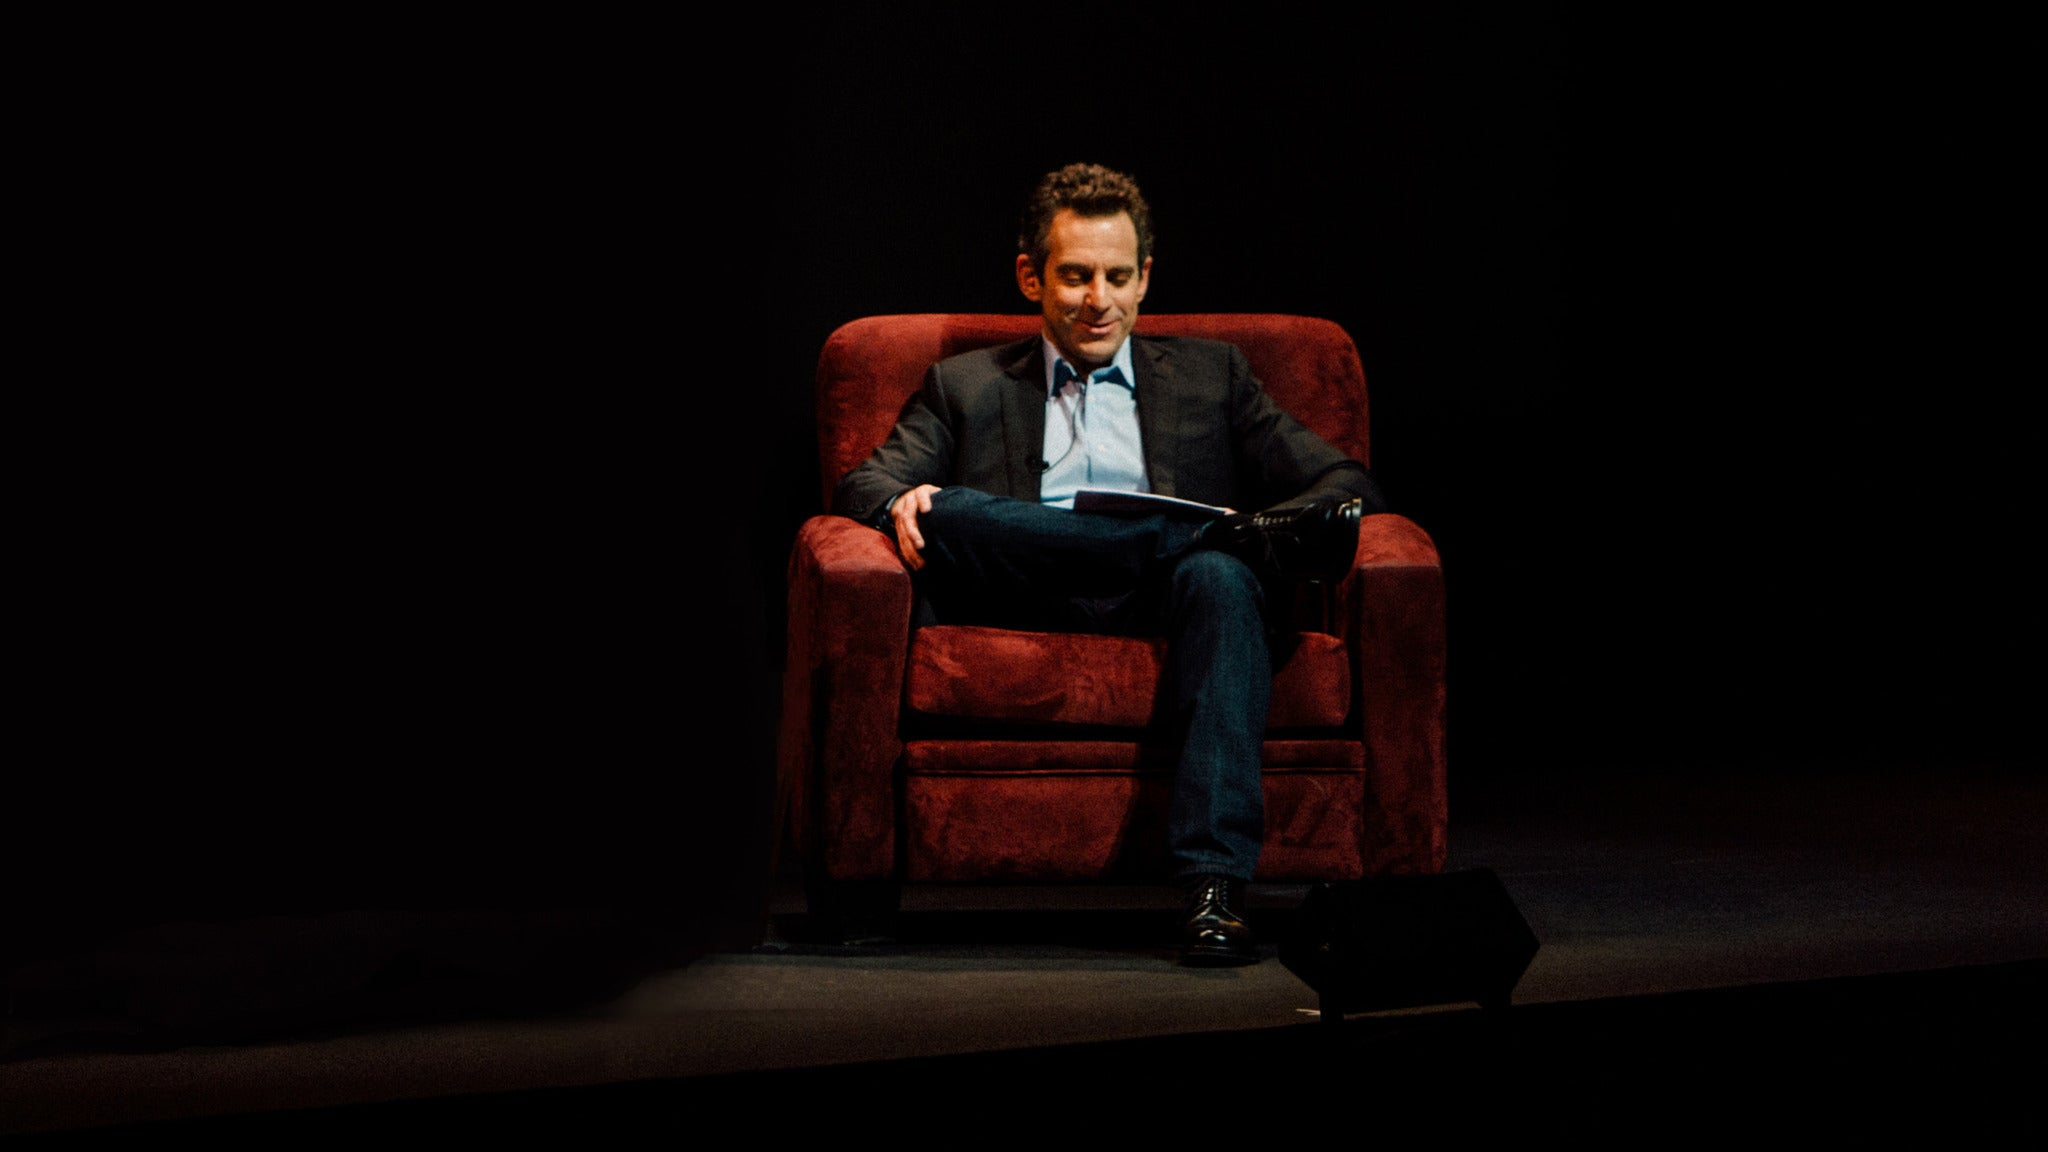 Sam Harris and the Waking Up Podcast